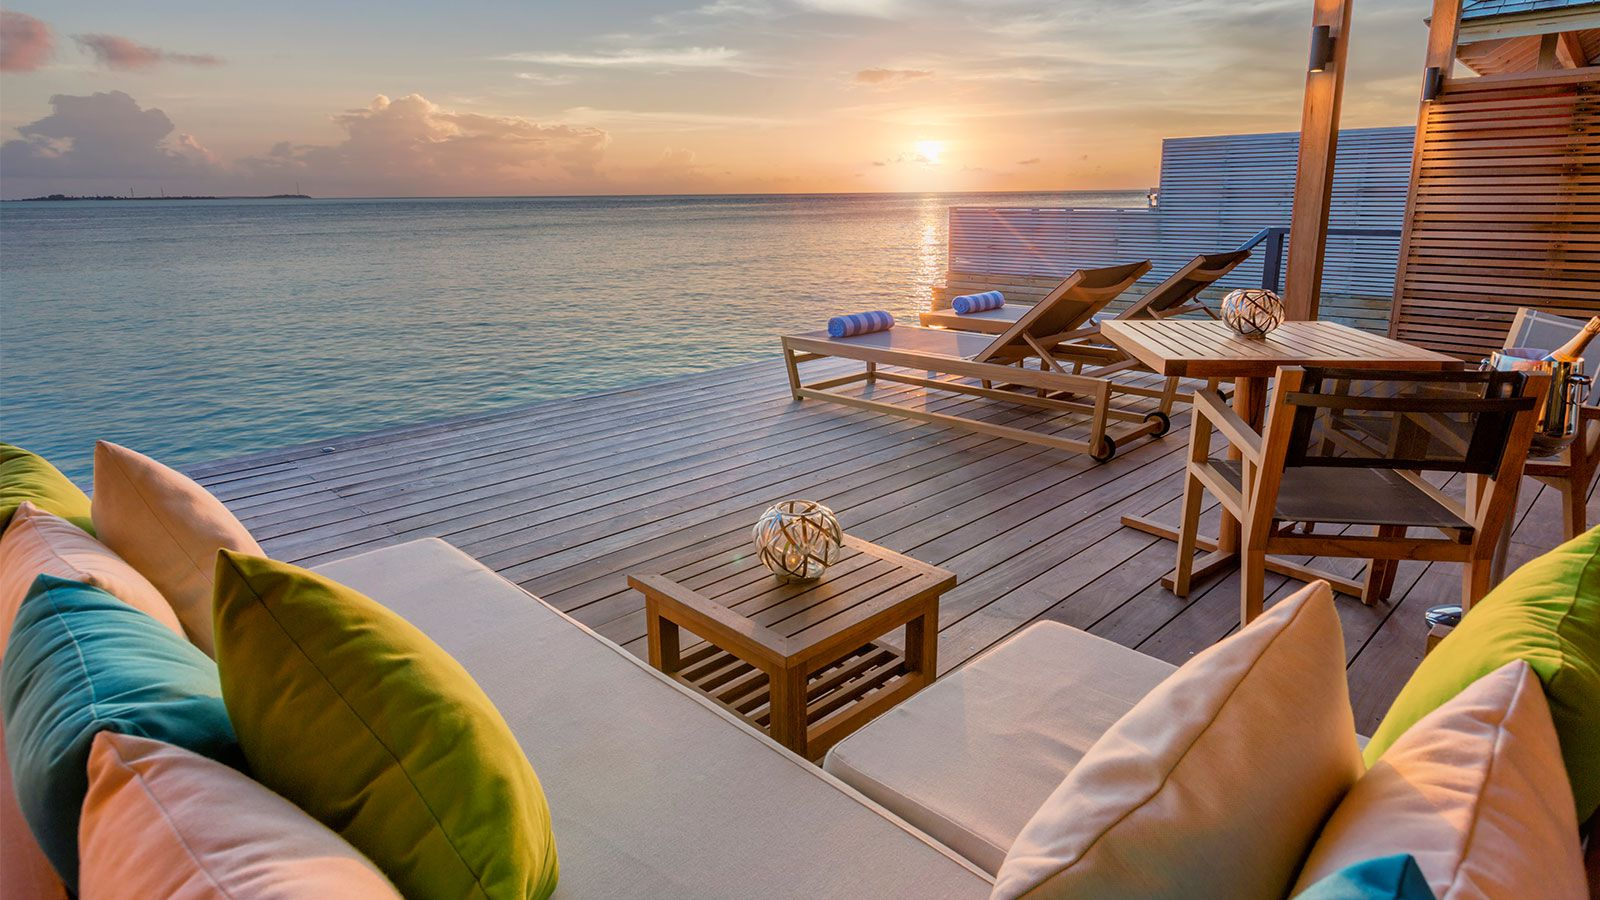 Villas together with Maldives Honeymoon moreover Top Seasons Hd Wallapers together with A City By Day Szczecin Poland in addition Romantic Breaks. on romantic sunset